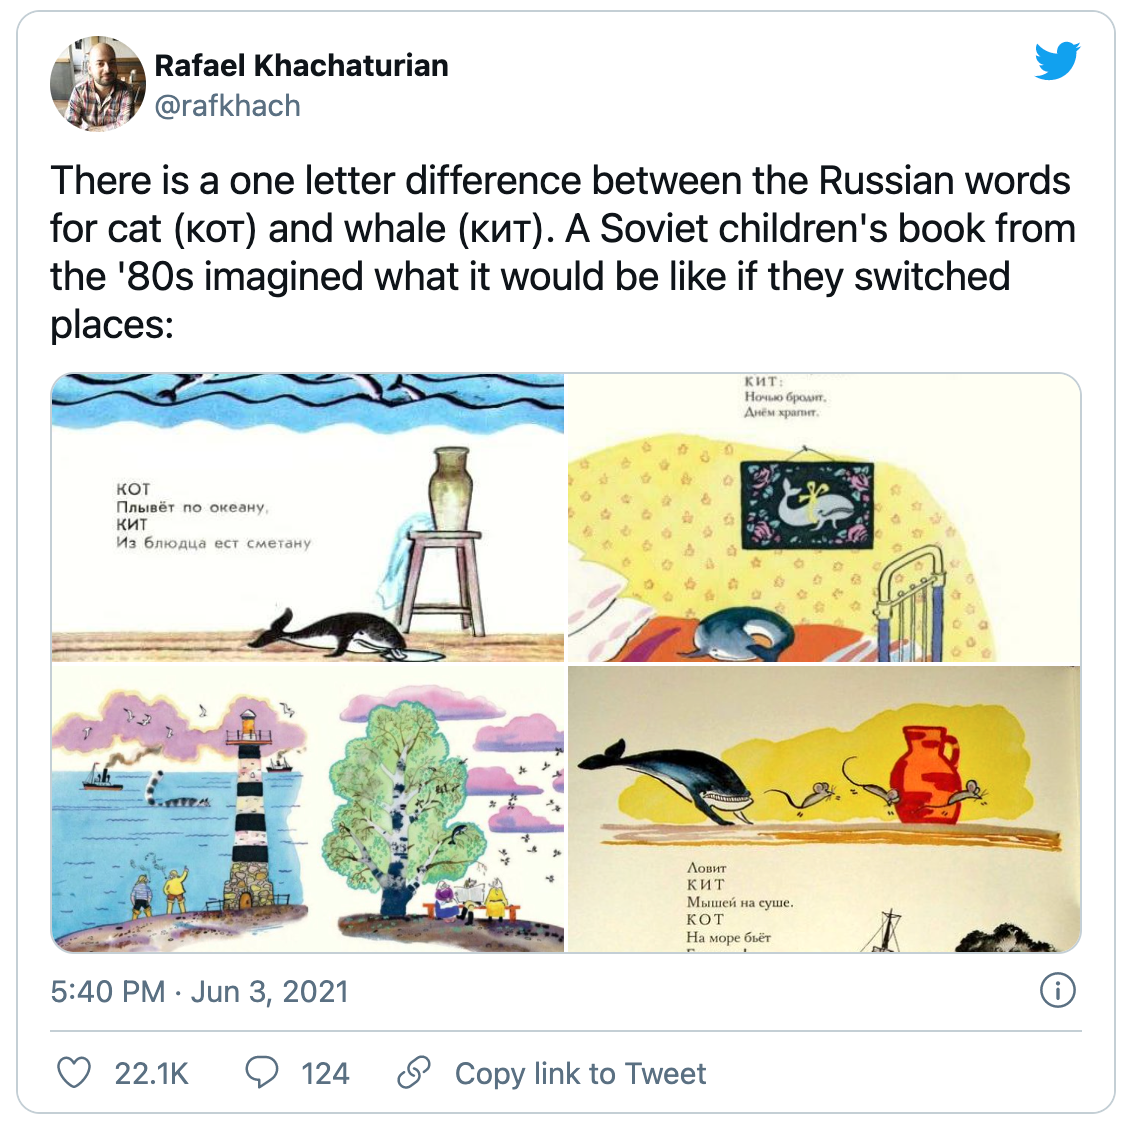 """Tweet from Rafael Khachurian reading: """"There is a one letter difference between the Russian words for cat (кот) and whale (кит). A Soviet children's book from the '80s imagined what it would be like if they switched places:"""" followed by four whimsical children's book drawings depicting cats where whales should be and vice versa."""